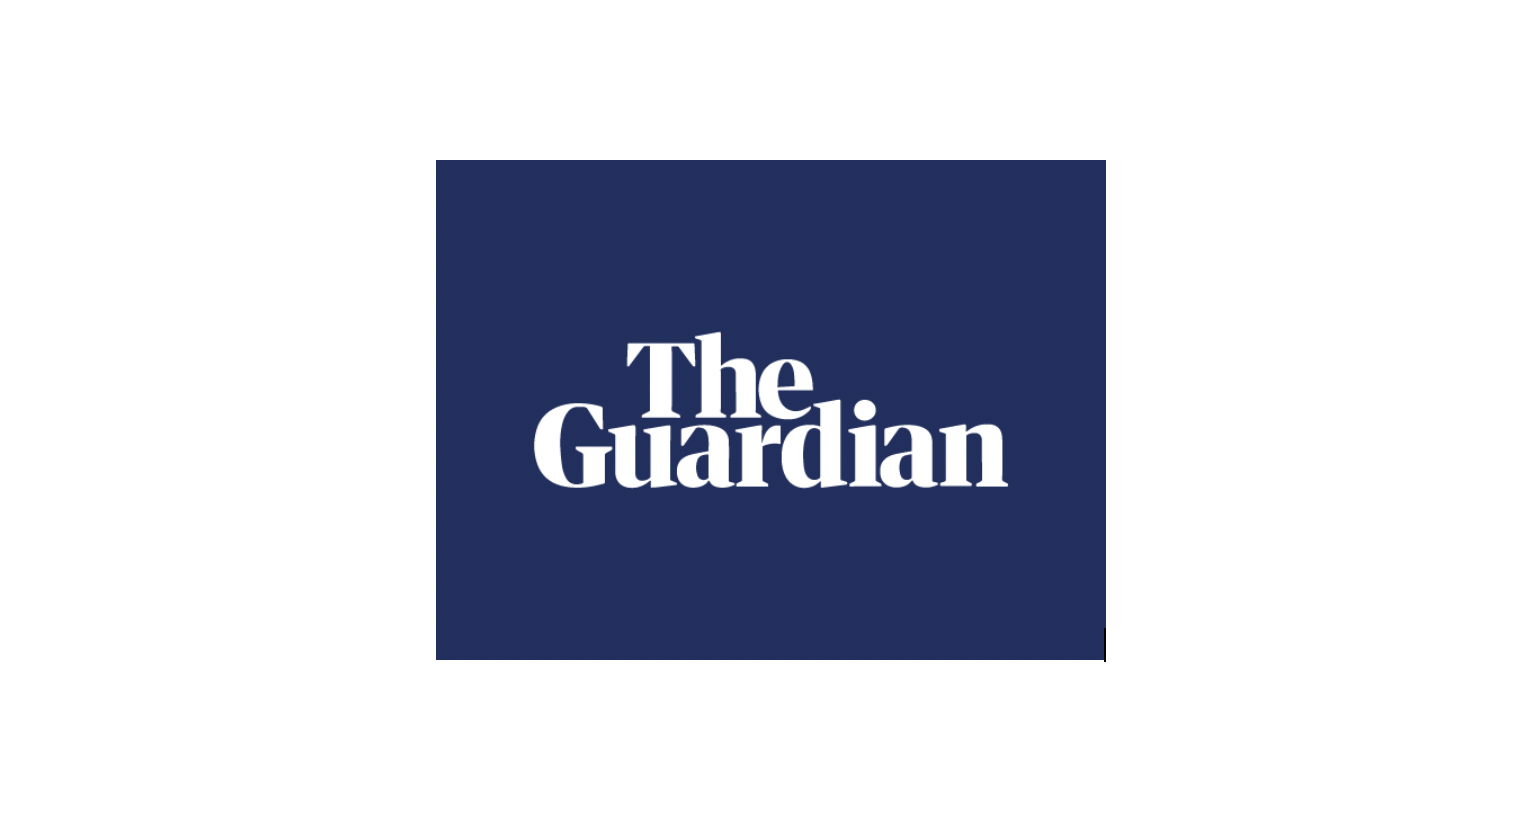 Our Blood in The Guardian:  'Tonnes of blood: artist seeks to draw world back to refugee crisis'